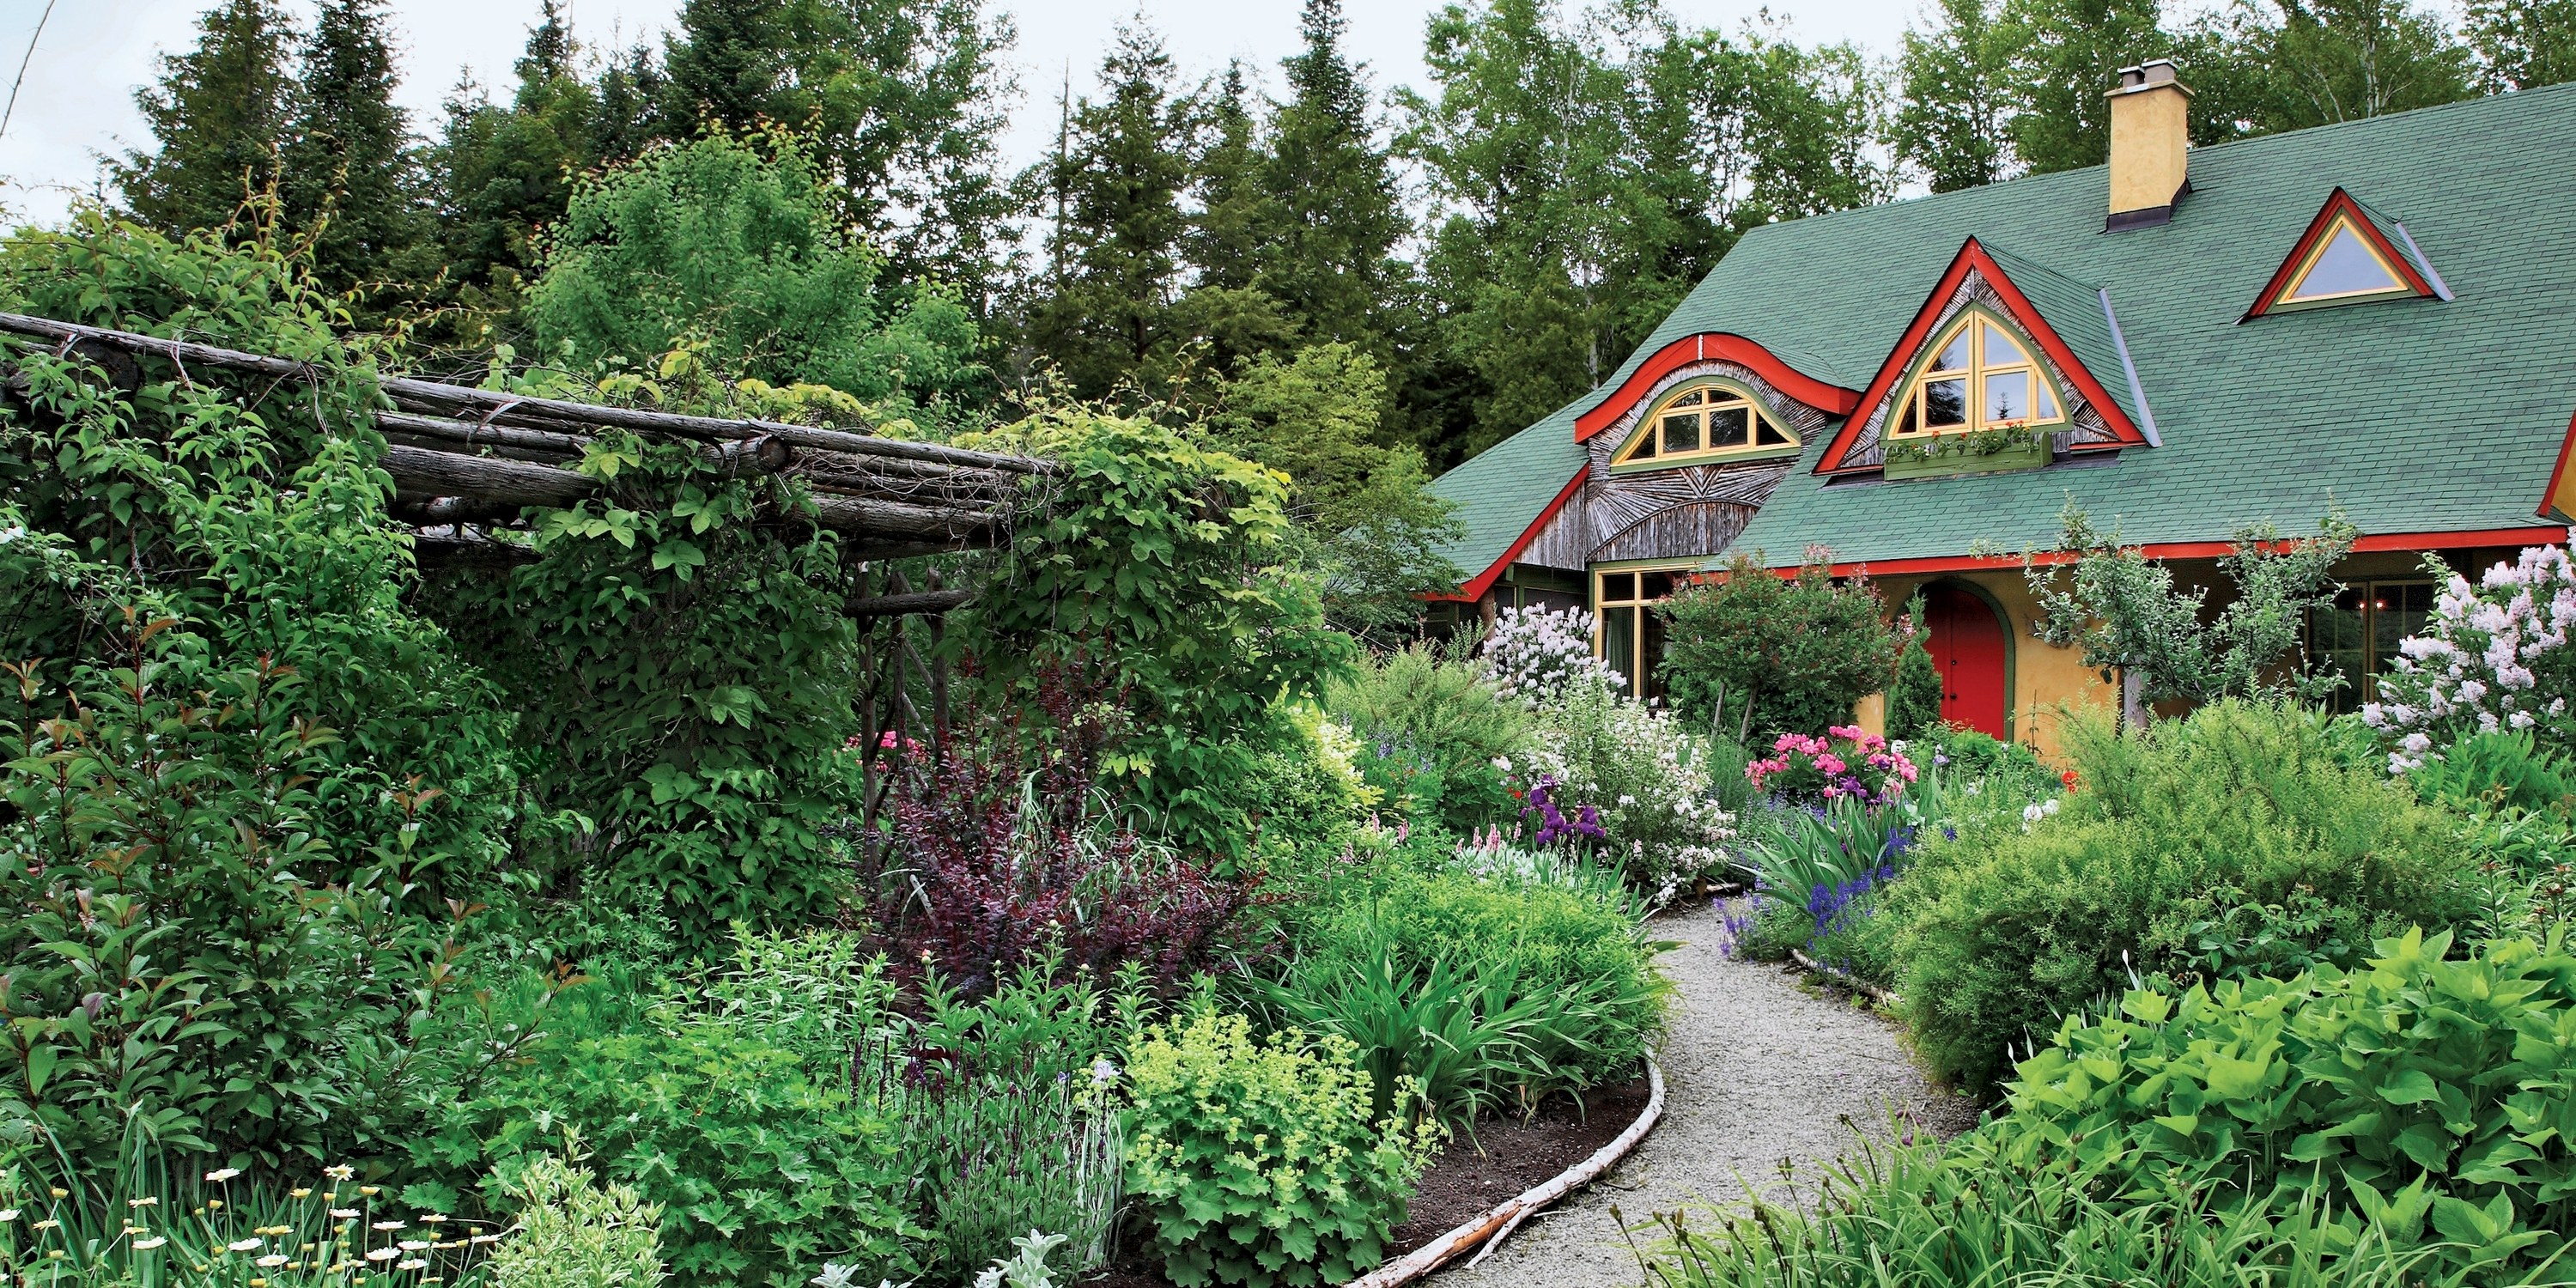 51 Front Yard And Backyard Landscaping Ideas Landscaping Designs Within Best Landscaping Plants Best Landscaping Plants And Trees